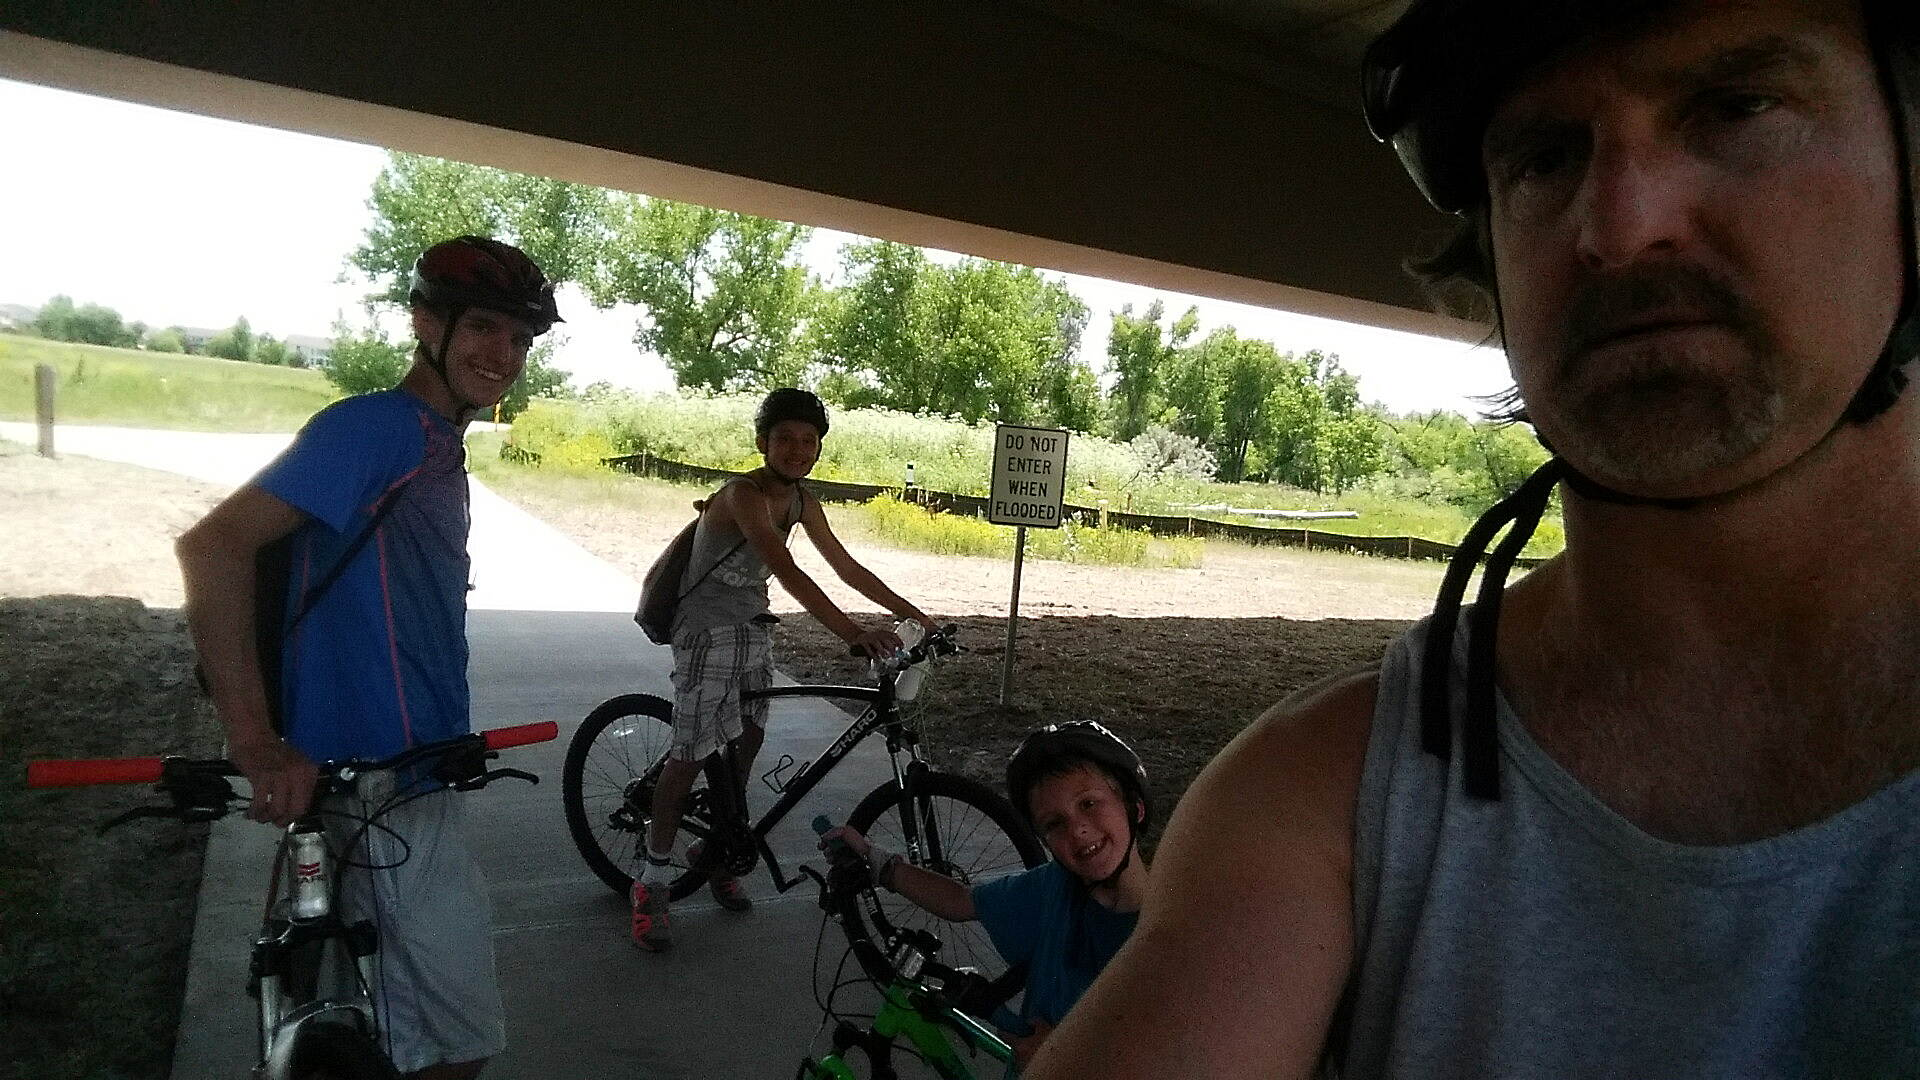 Cherry Creek Regional Trail out with the boys